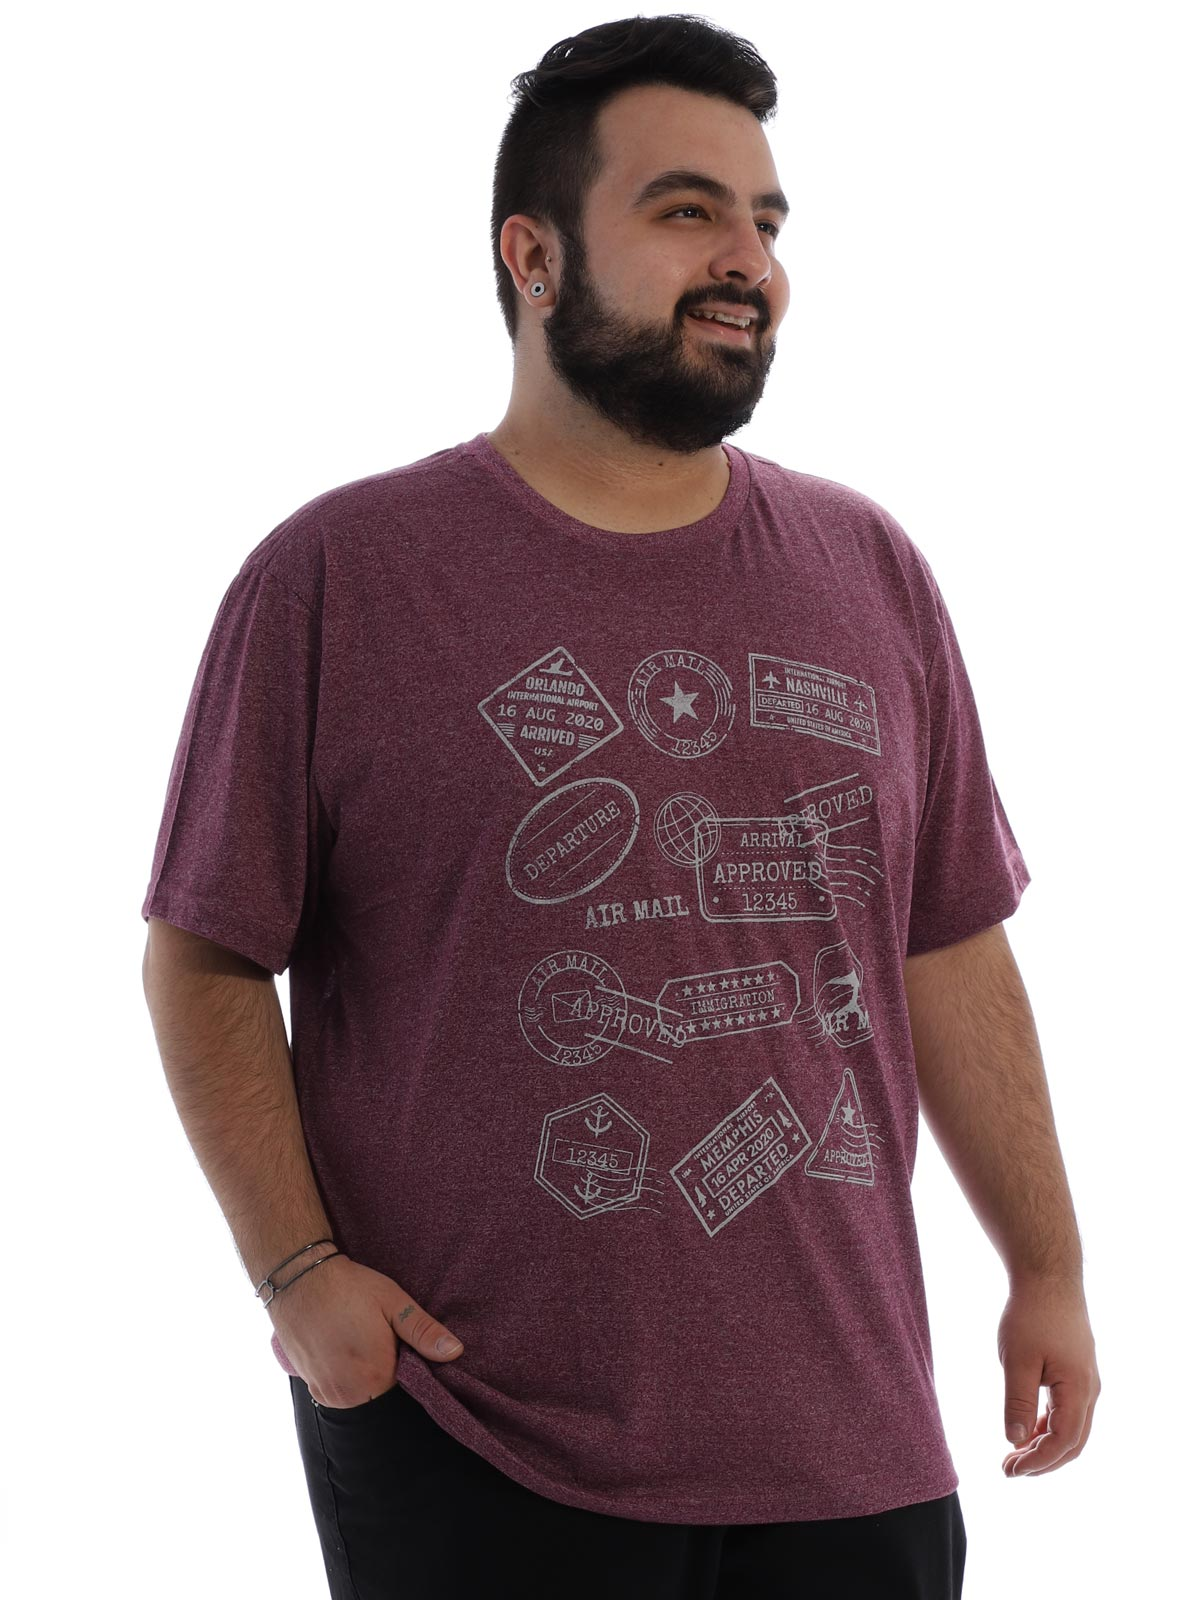 Camiseta Plus Size Masculina Algodão Mouline Nature Bordo